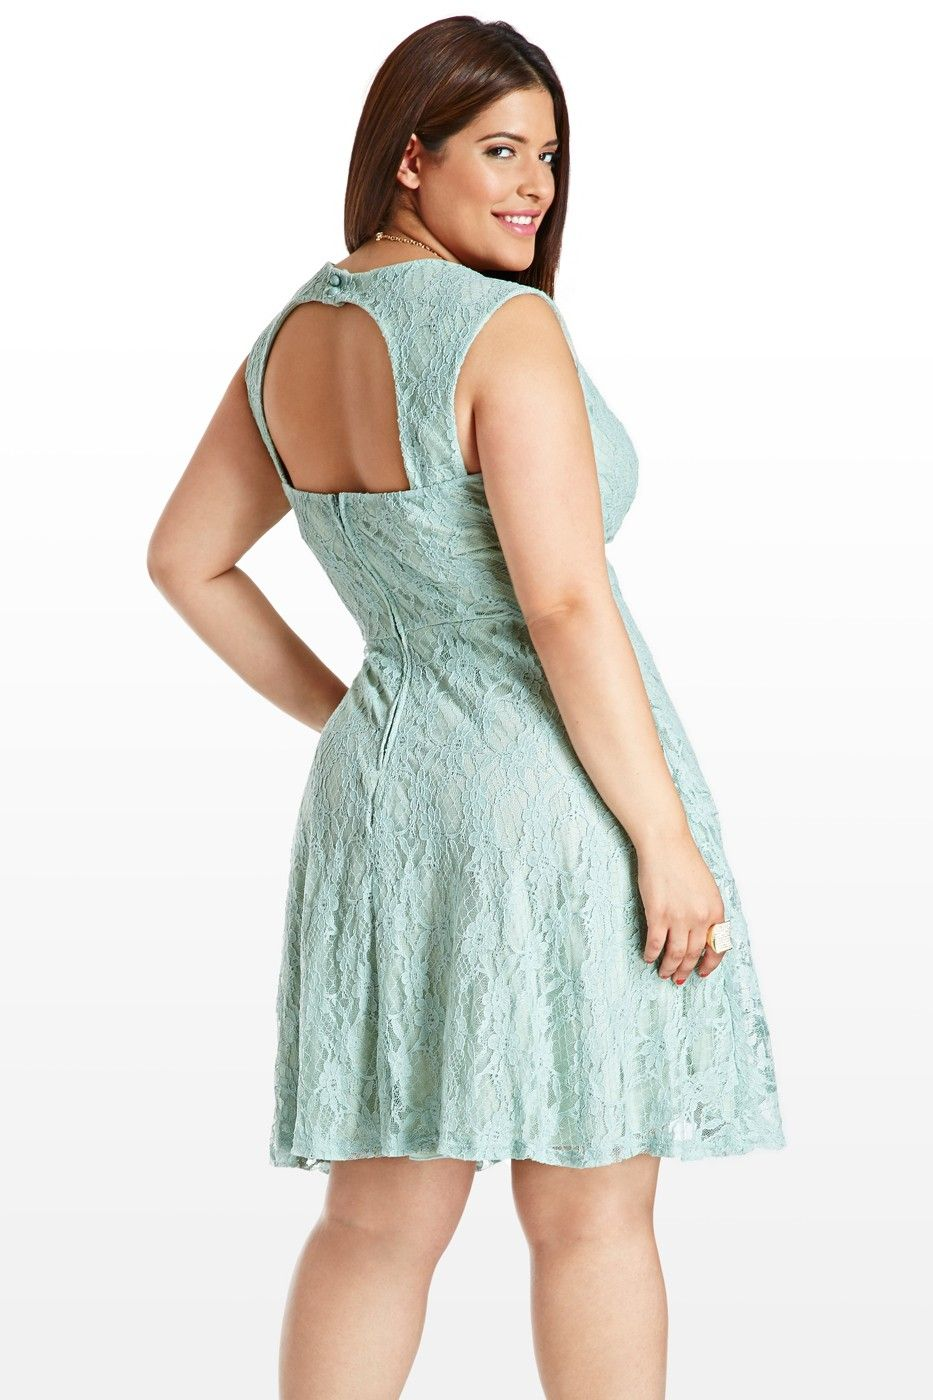 Carpe Diem Lace Dress, love that its modest with the flirty back ...